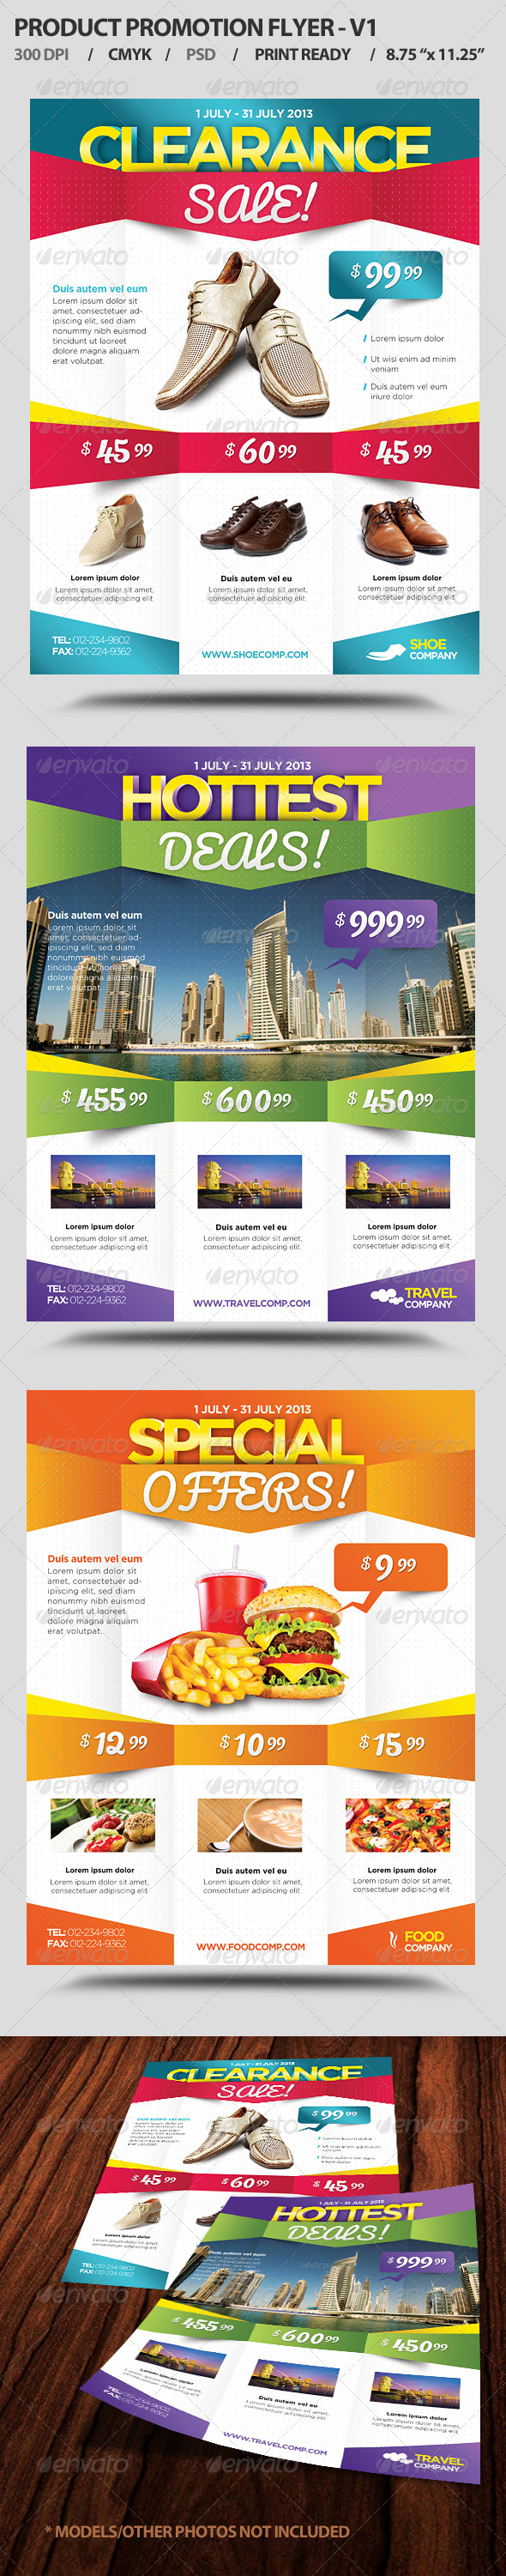 Product Promotion Flyer V1 - Flyers Print Templates